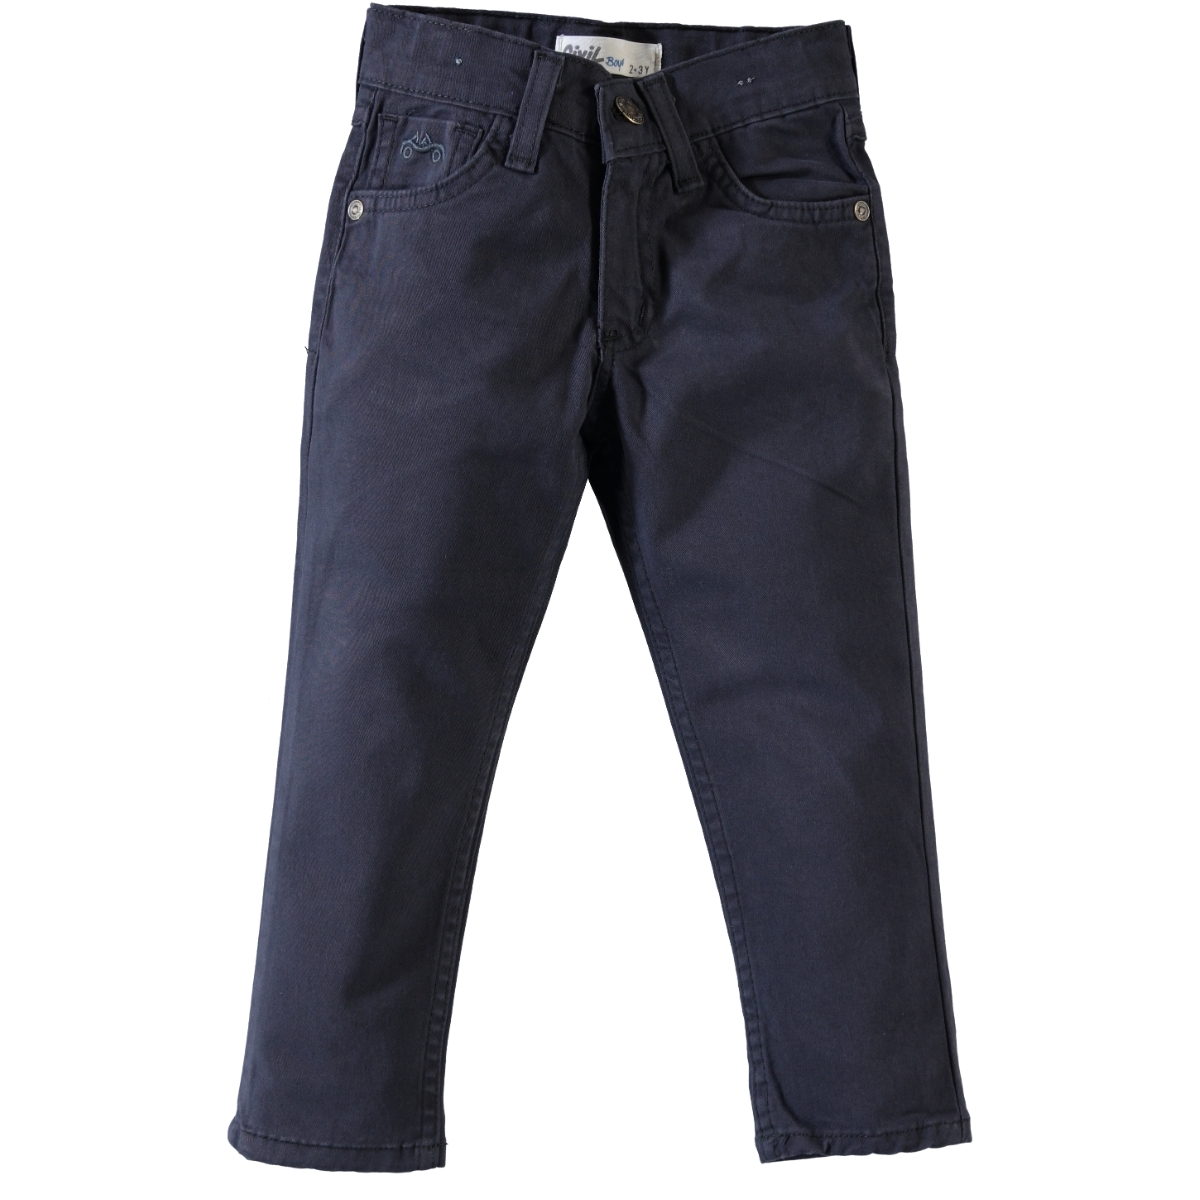 Civil Boys Smoked 2-5 Years Boy Pants